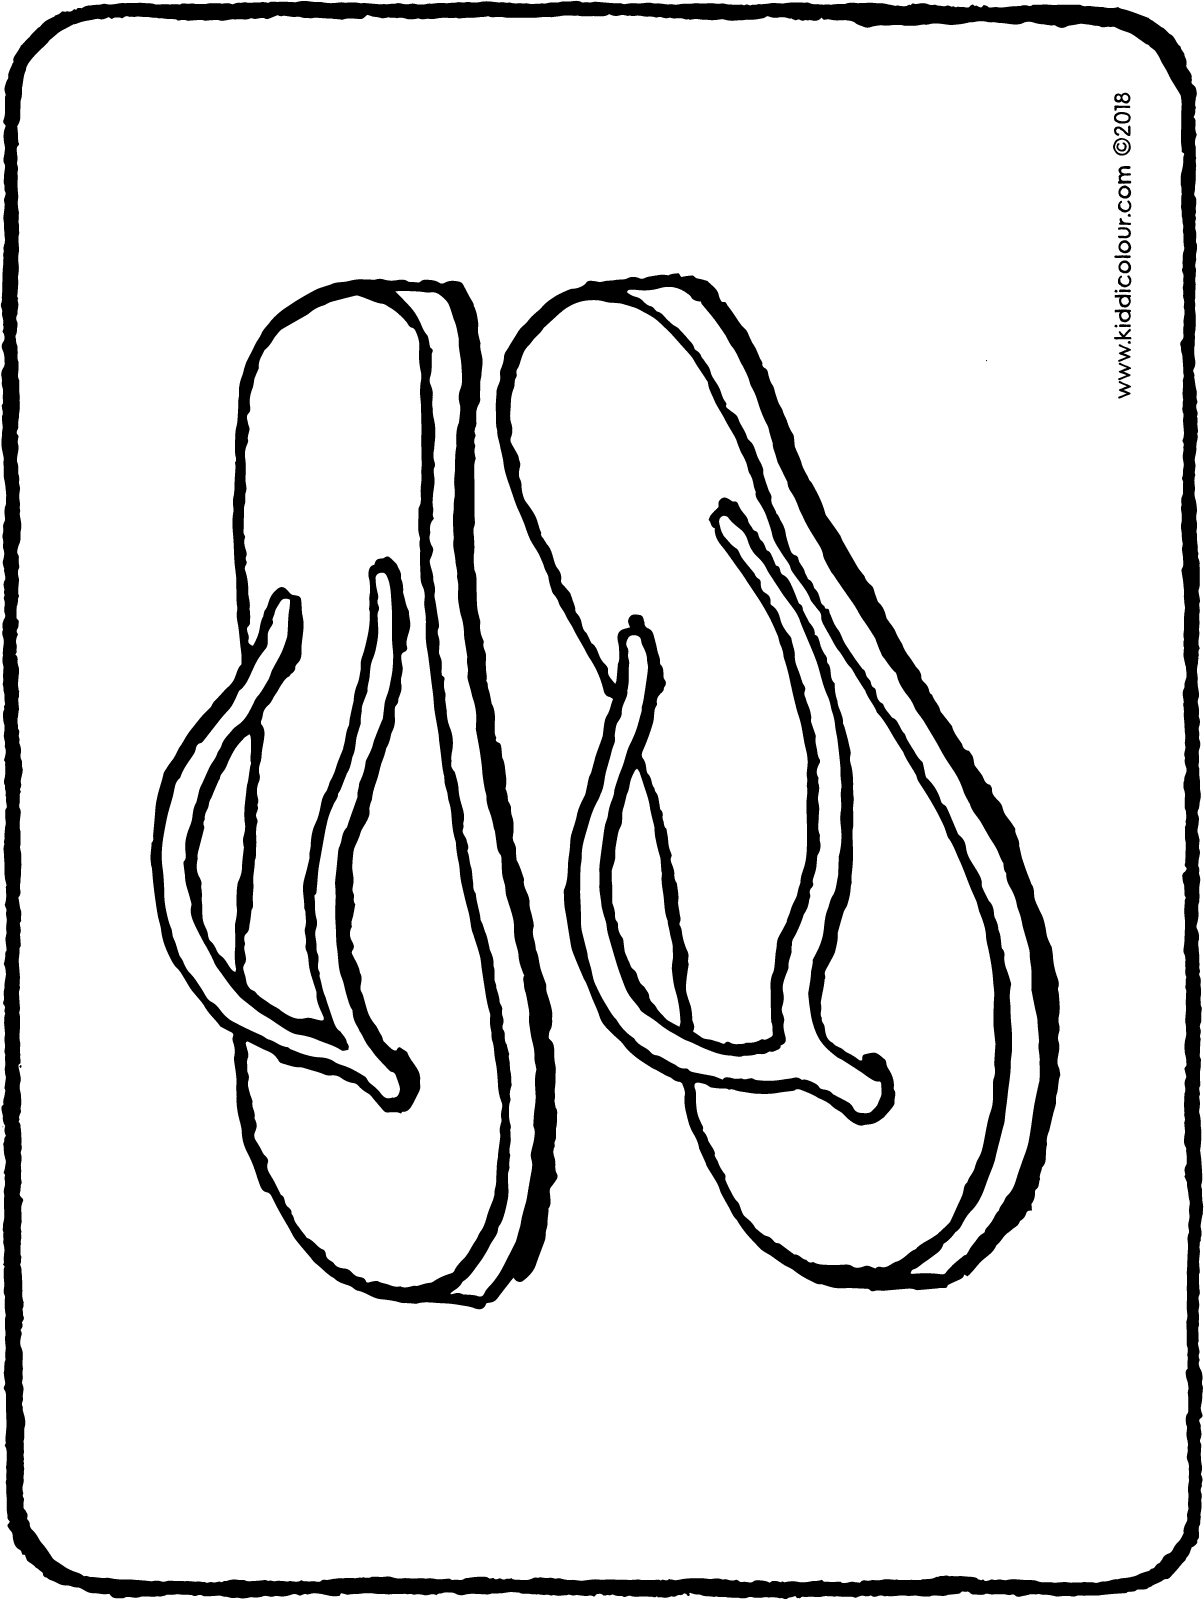 flip-flops colouring page drawing picture 01H